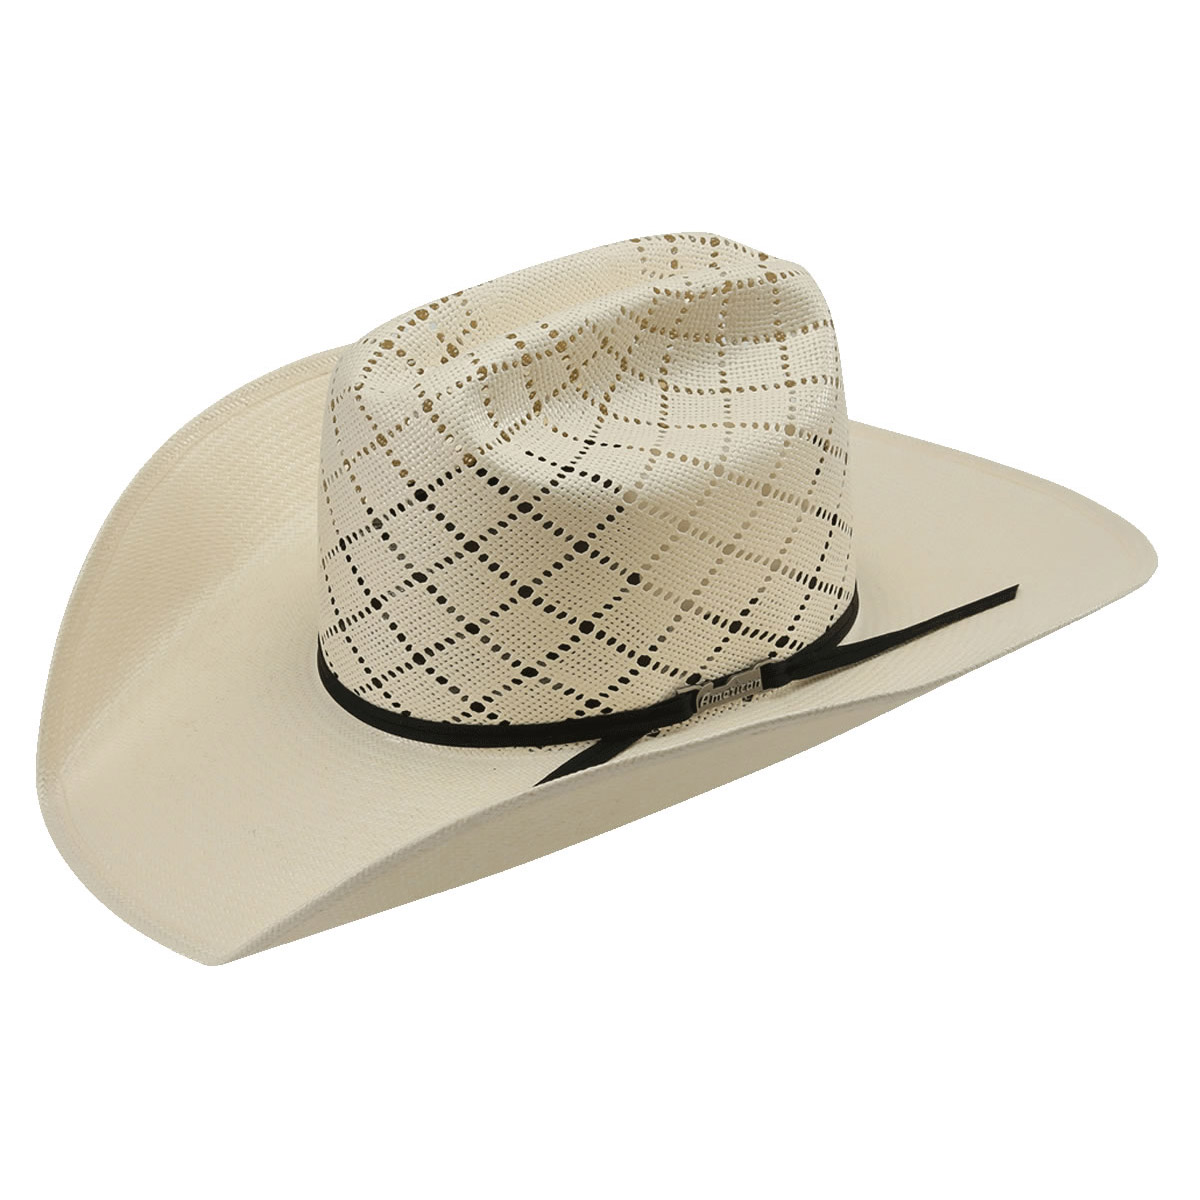 American Hat Co 20☆ Patchwork Crossbred Straw Hat - White. Tap to expand 1bfb5d1eef0a